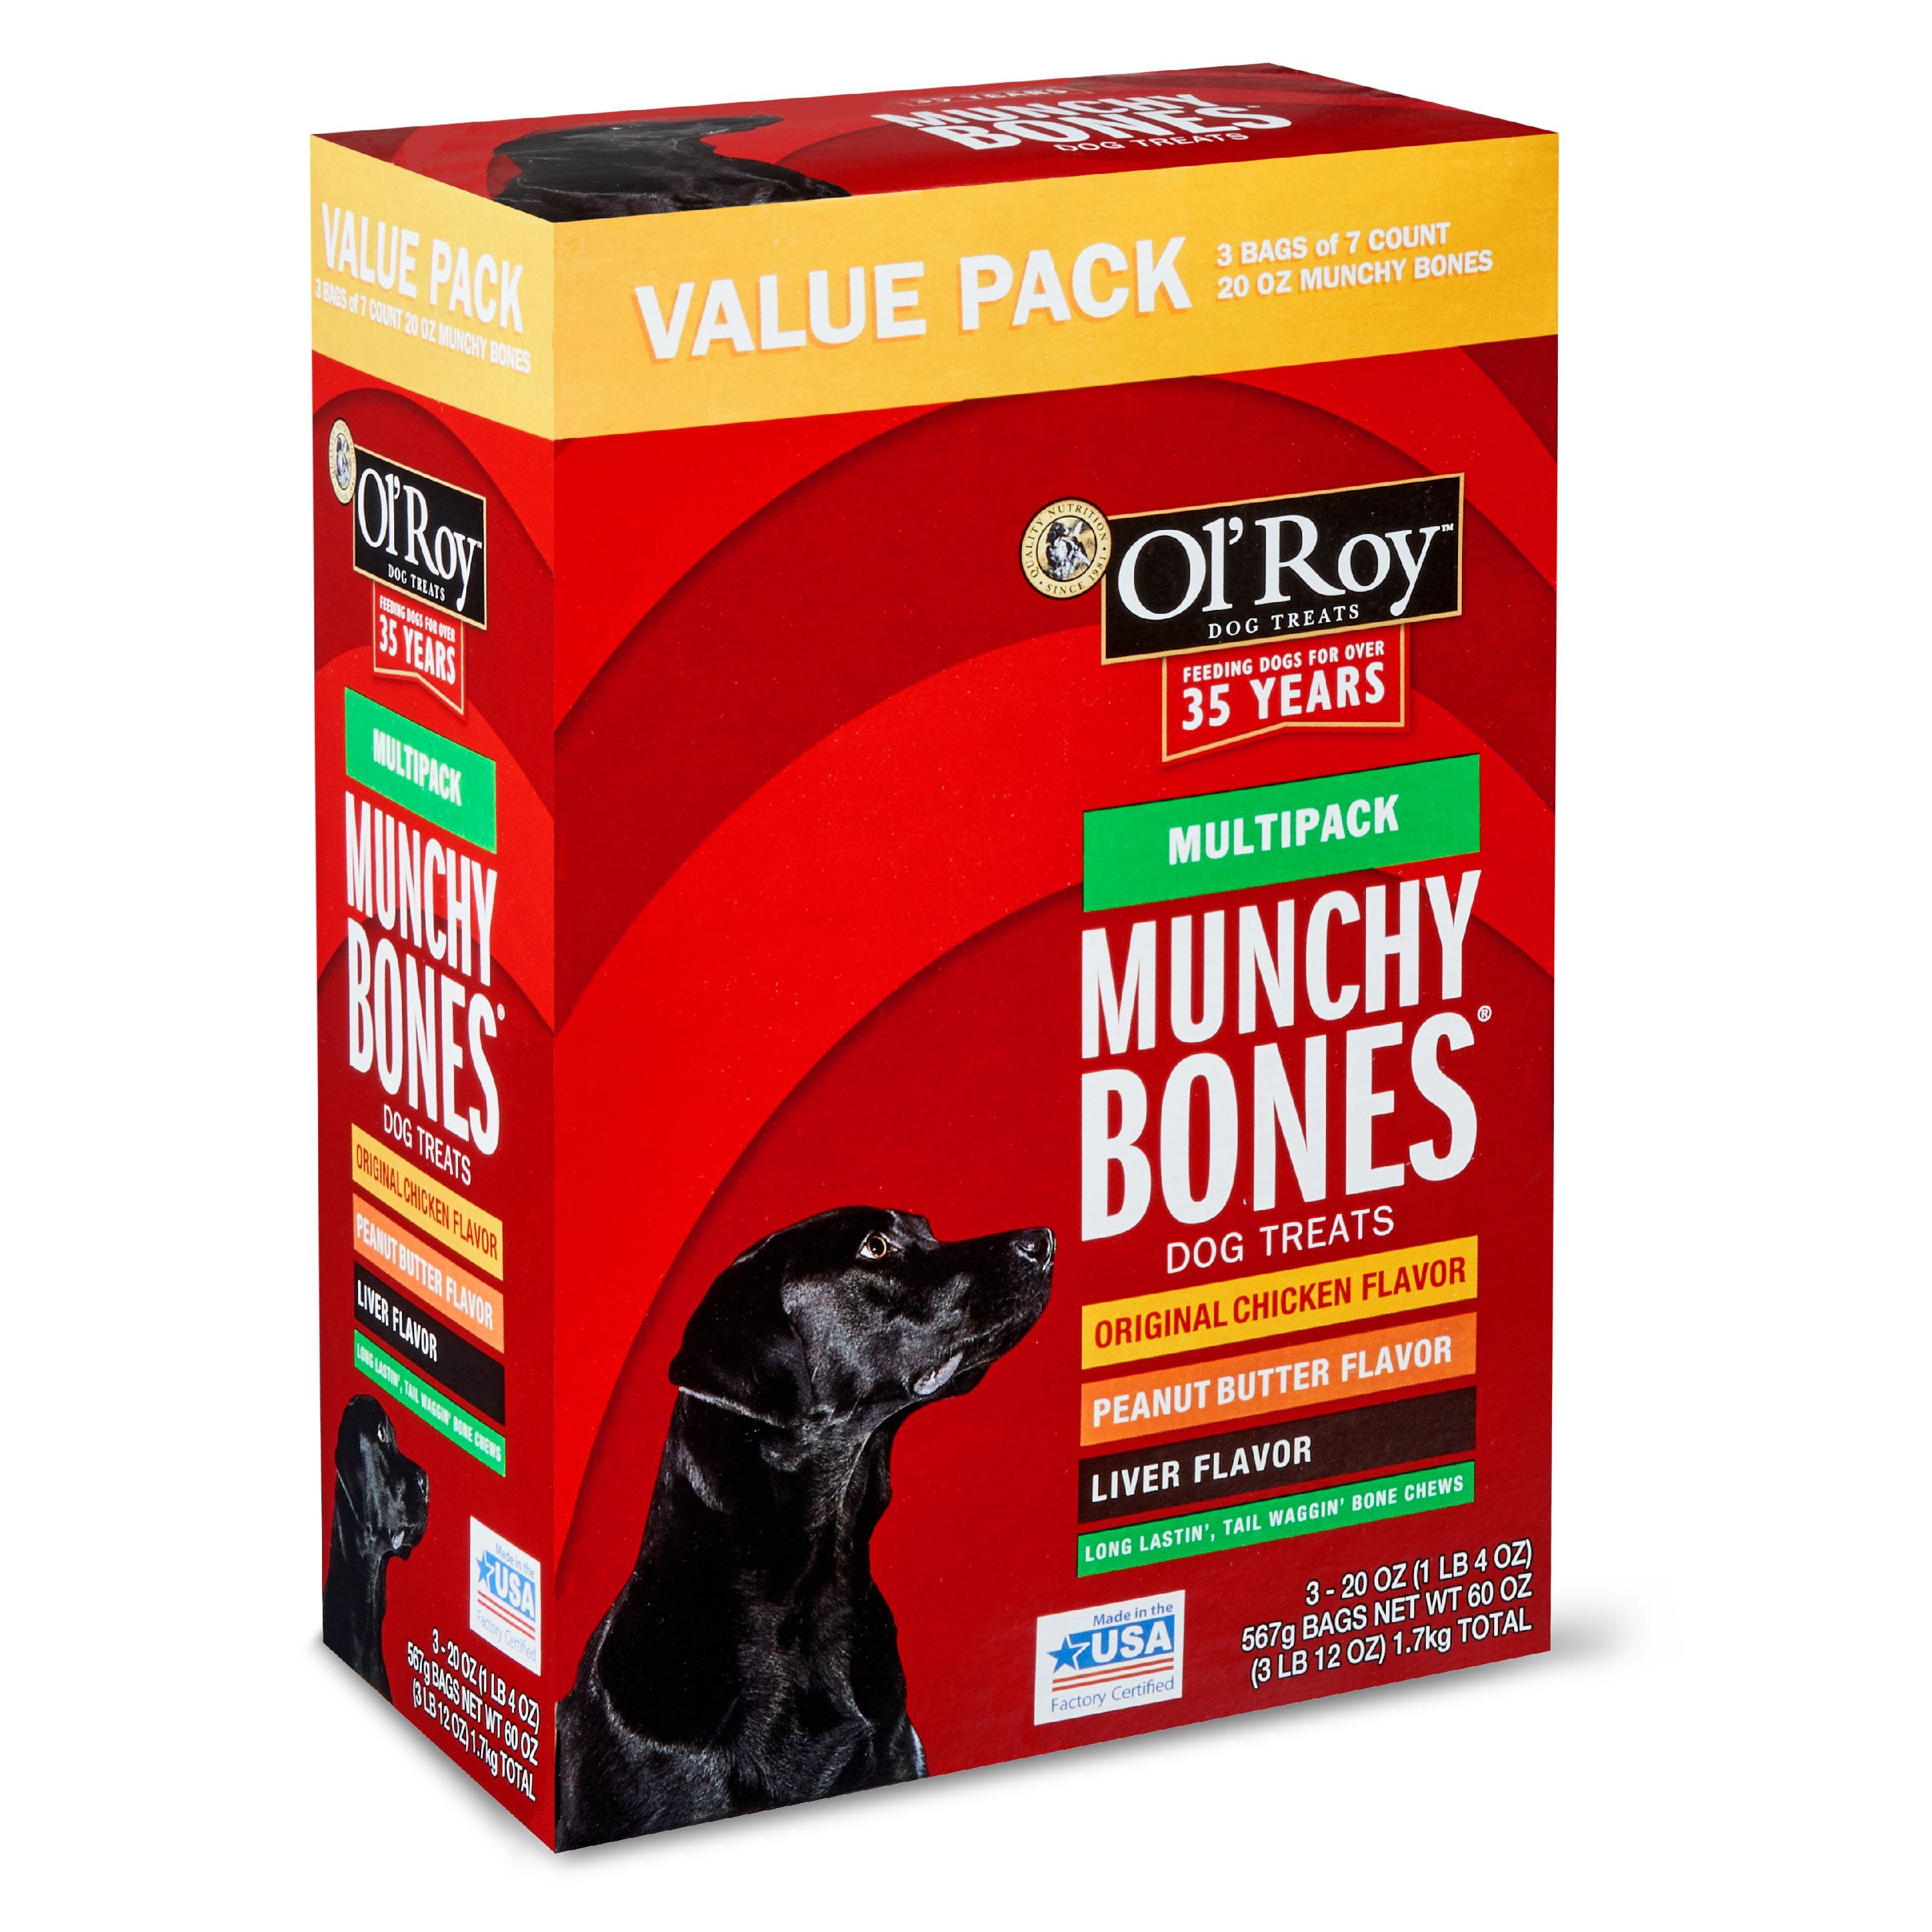 7071dfe1c853 Ol' Roy Munchy Bones Dog Treats Value Pack, Chicken, Liver & Peanut Butter,  60 oz. (21 Count) - Walmart.com